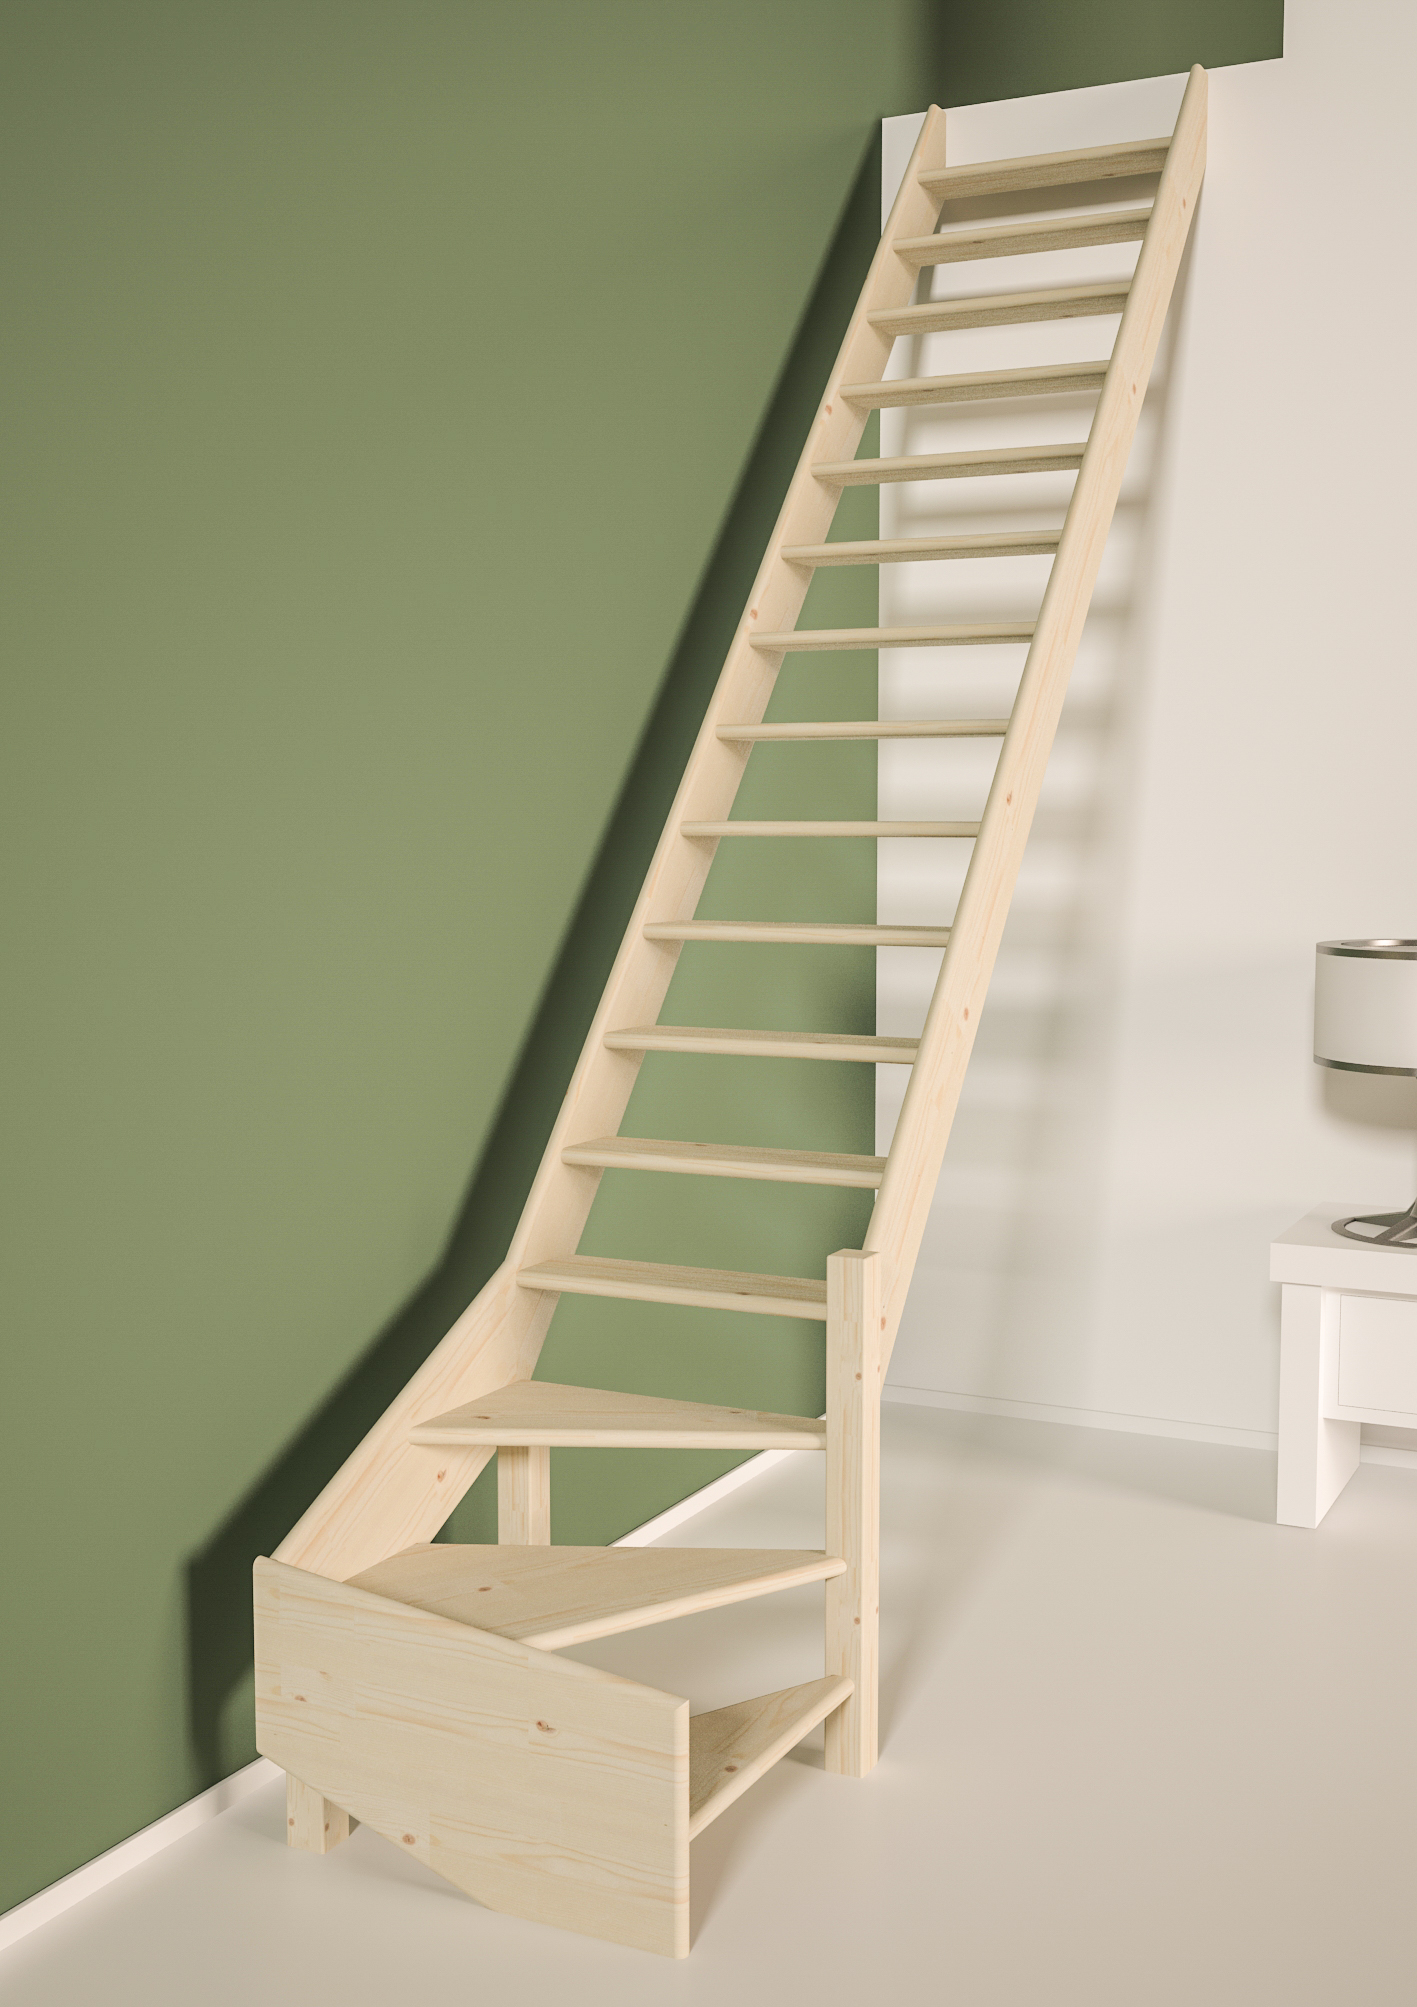 Cottage MEDIUM escalier 1/4 tournant